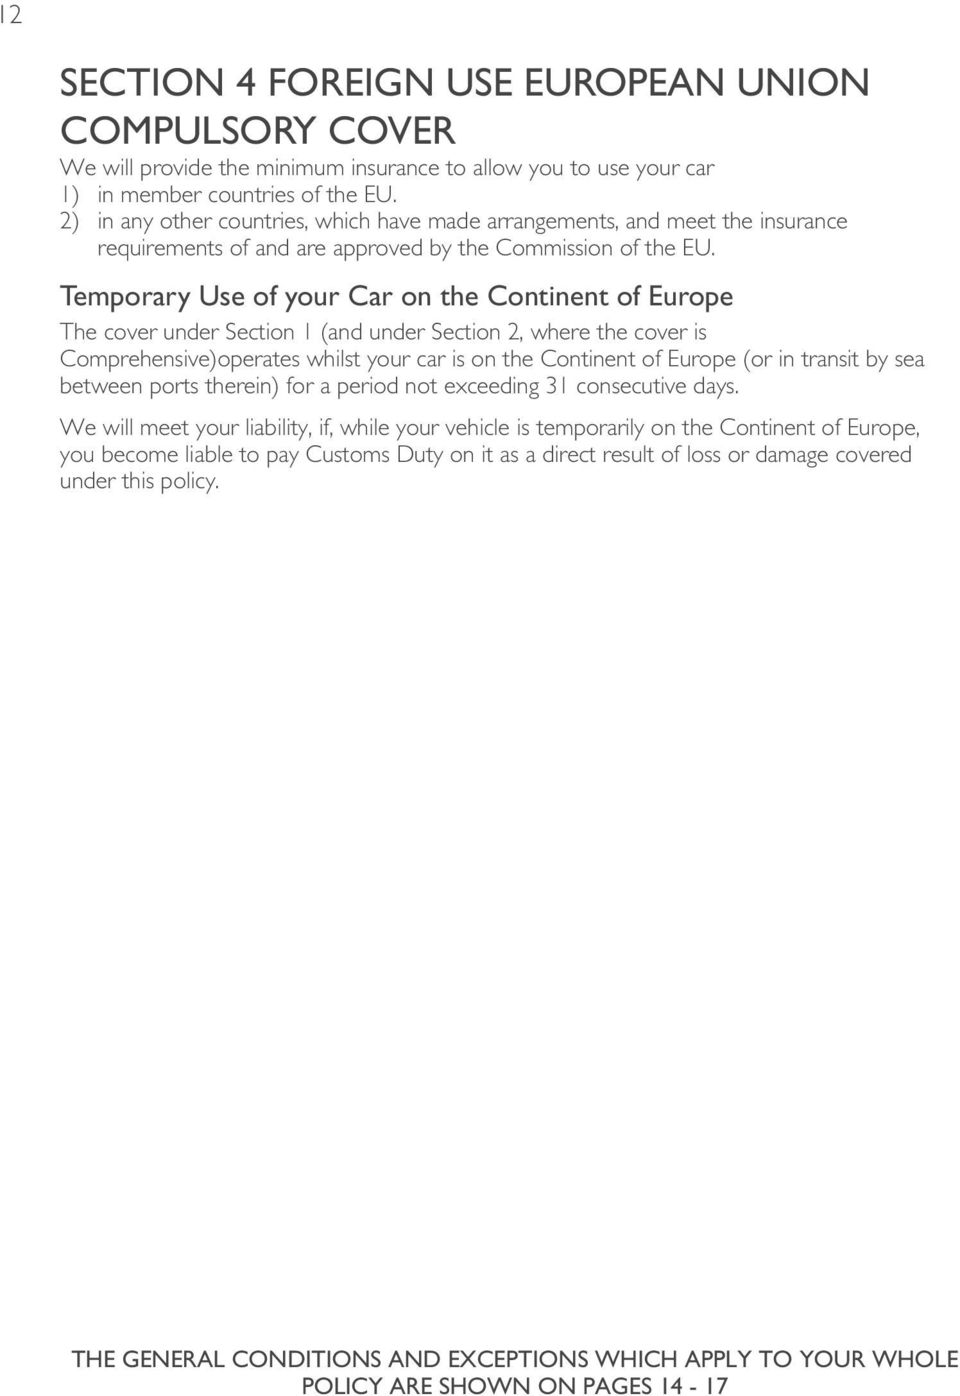 Temporary Use of your Car on the Continent of Europe The cover under Section 1 (and under Section 2, where the cover is Comprehensive)operates whilst your car is on the Continent of Europe (or in